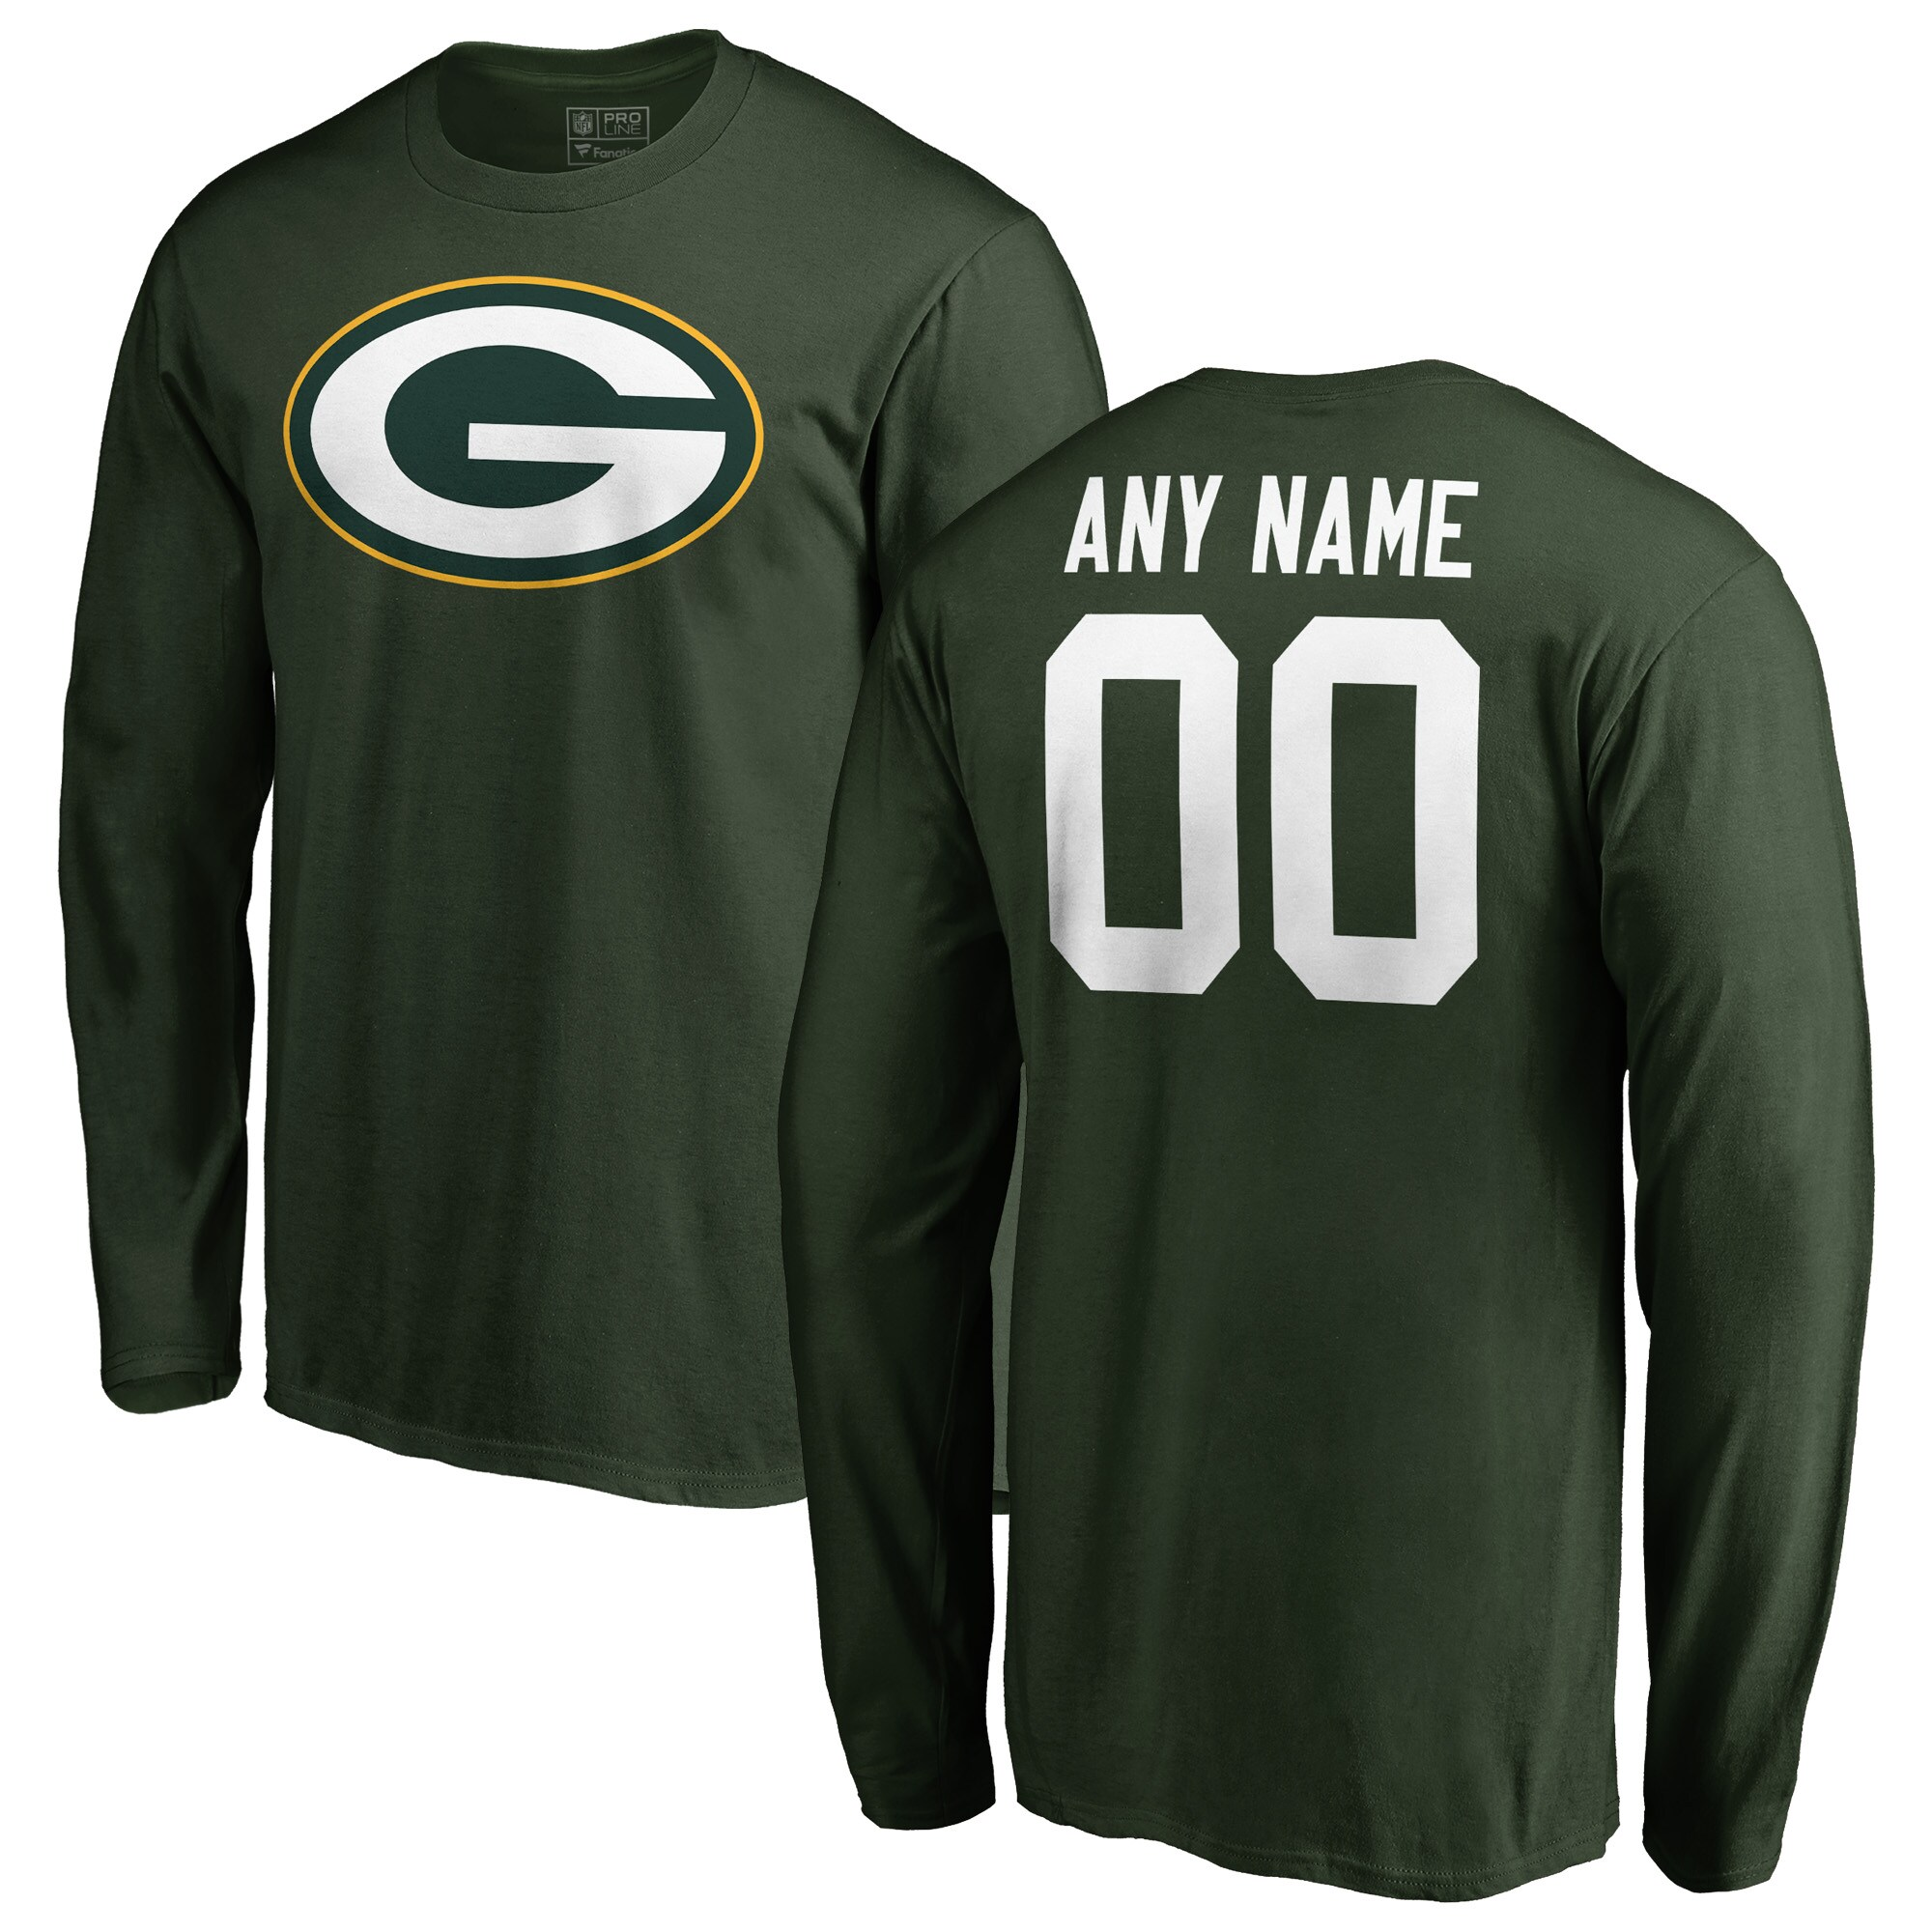 Green Bay Packers NFL Pro Line Any Name & Number Logo Personalized Long Sleeve T-Shirt - Green